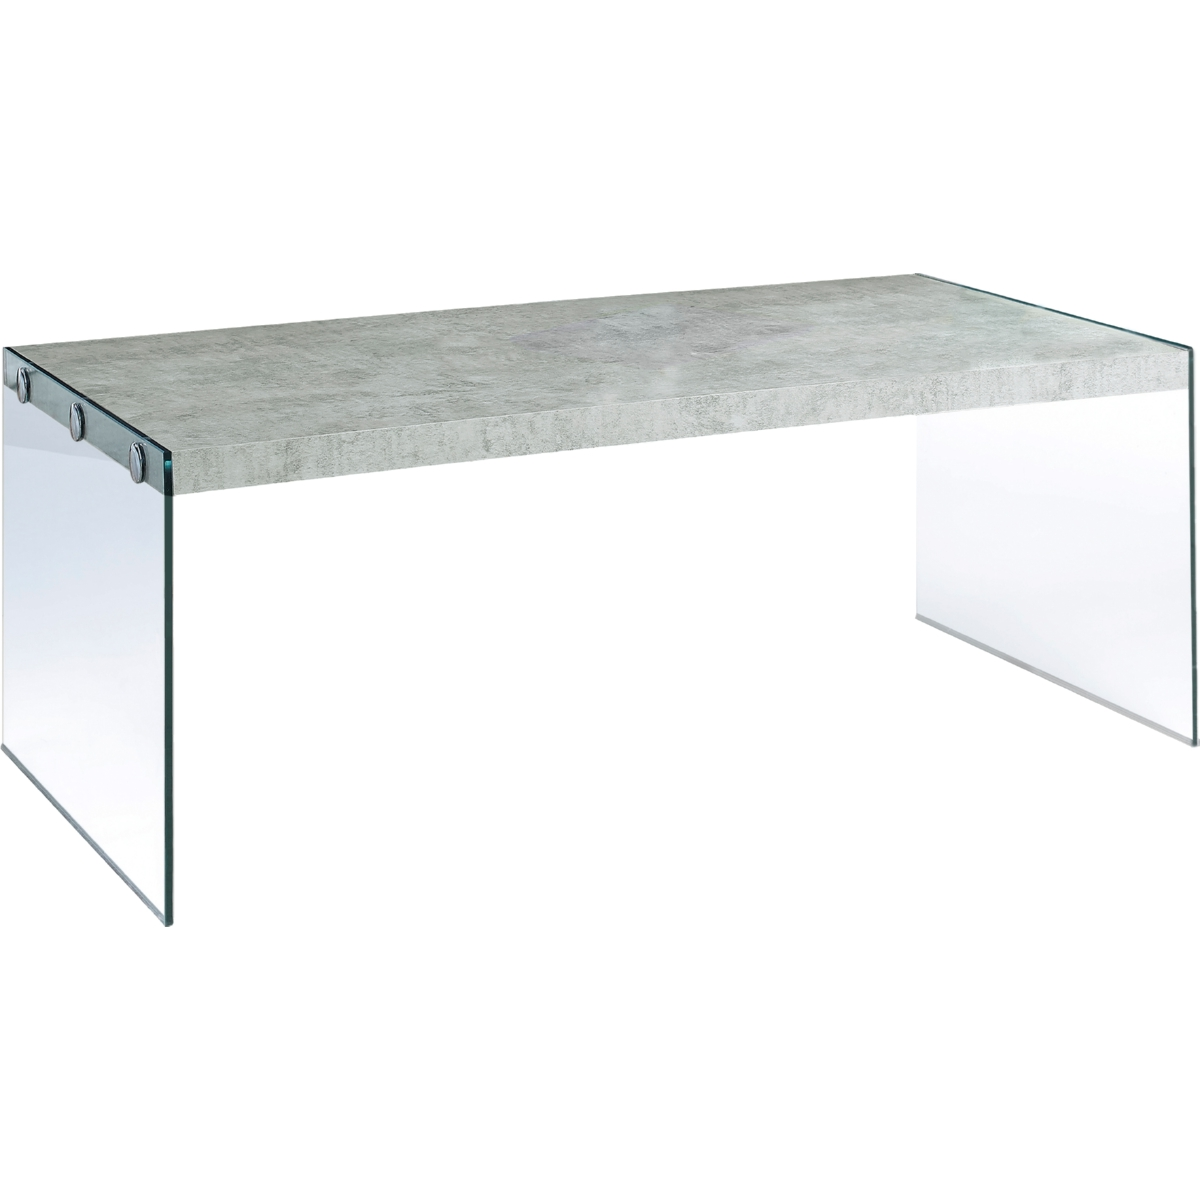 Monarch Specialties I 3230 Coffee Table in Grey Cement Look w